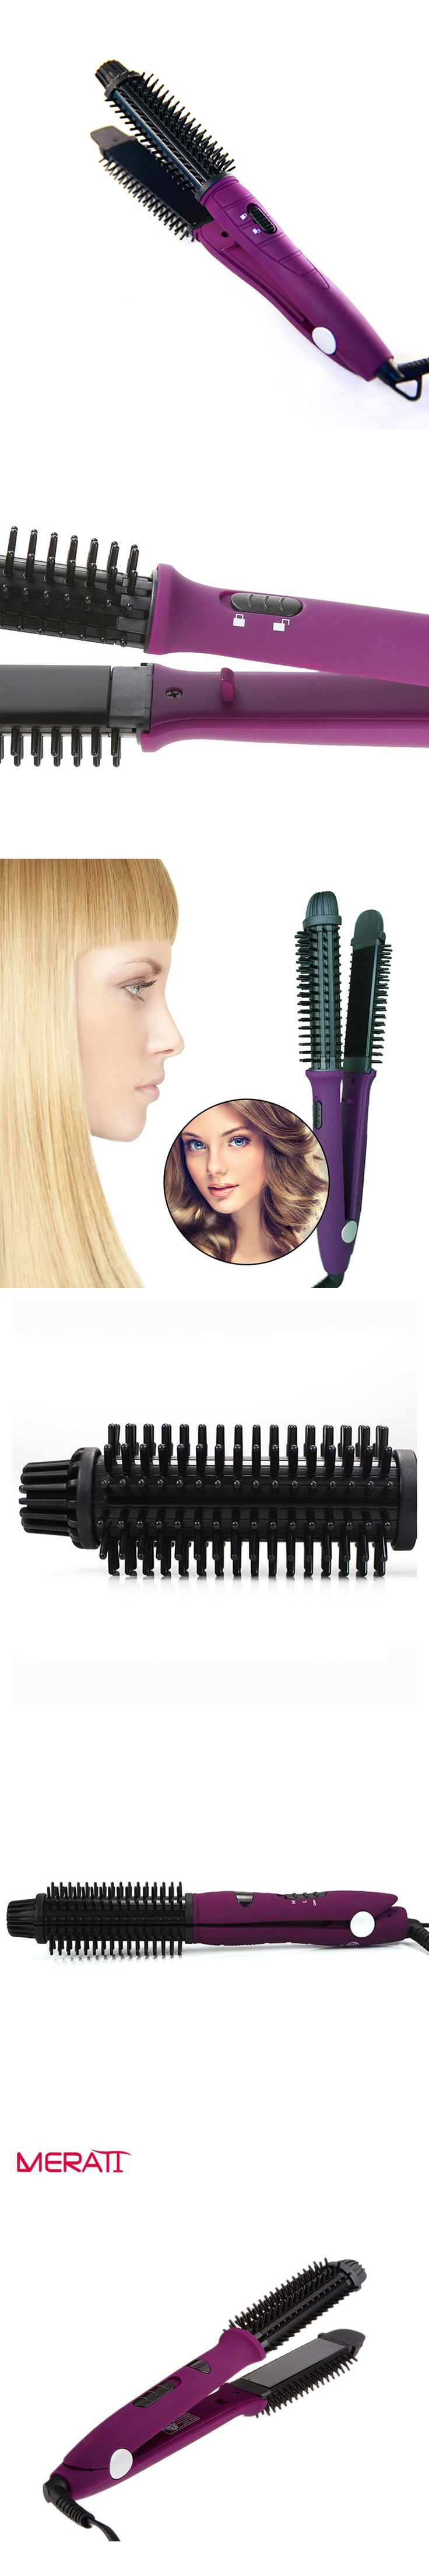 Hair Styling Tools 2 in 1 Pro Curling Hair Magic Hair Straightener Brush Straightening comb Irons Hair Curler